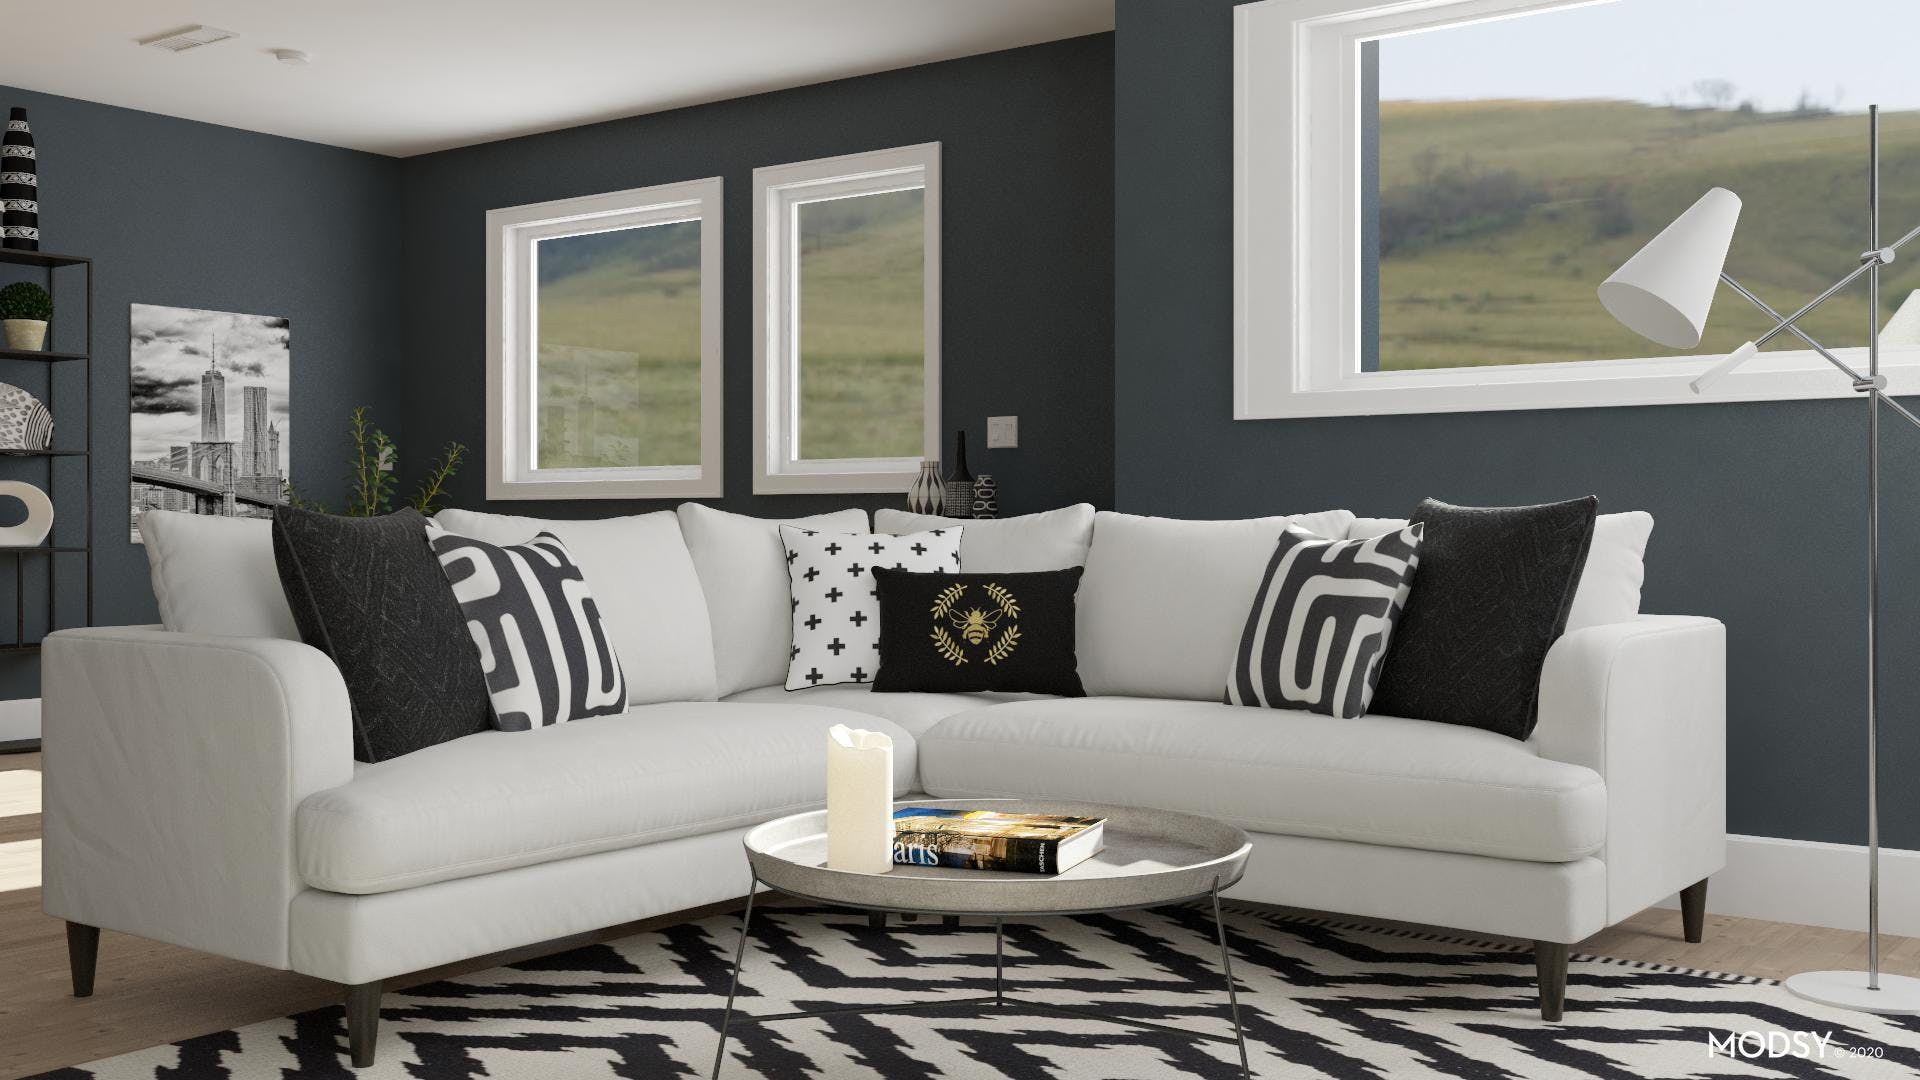 Speaking The Same Language: A Black And White Living Room